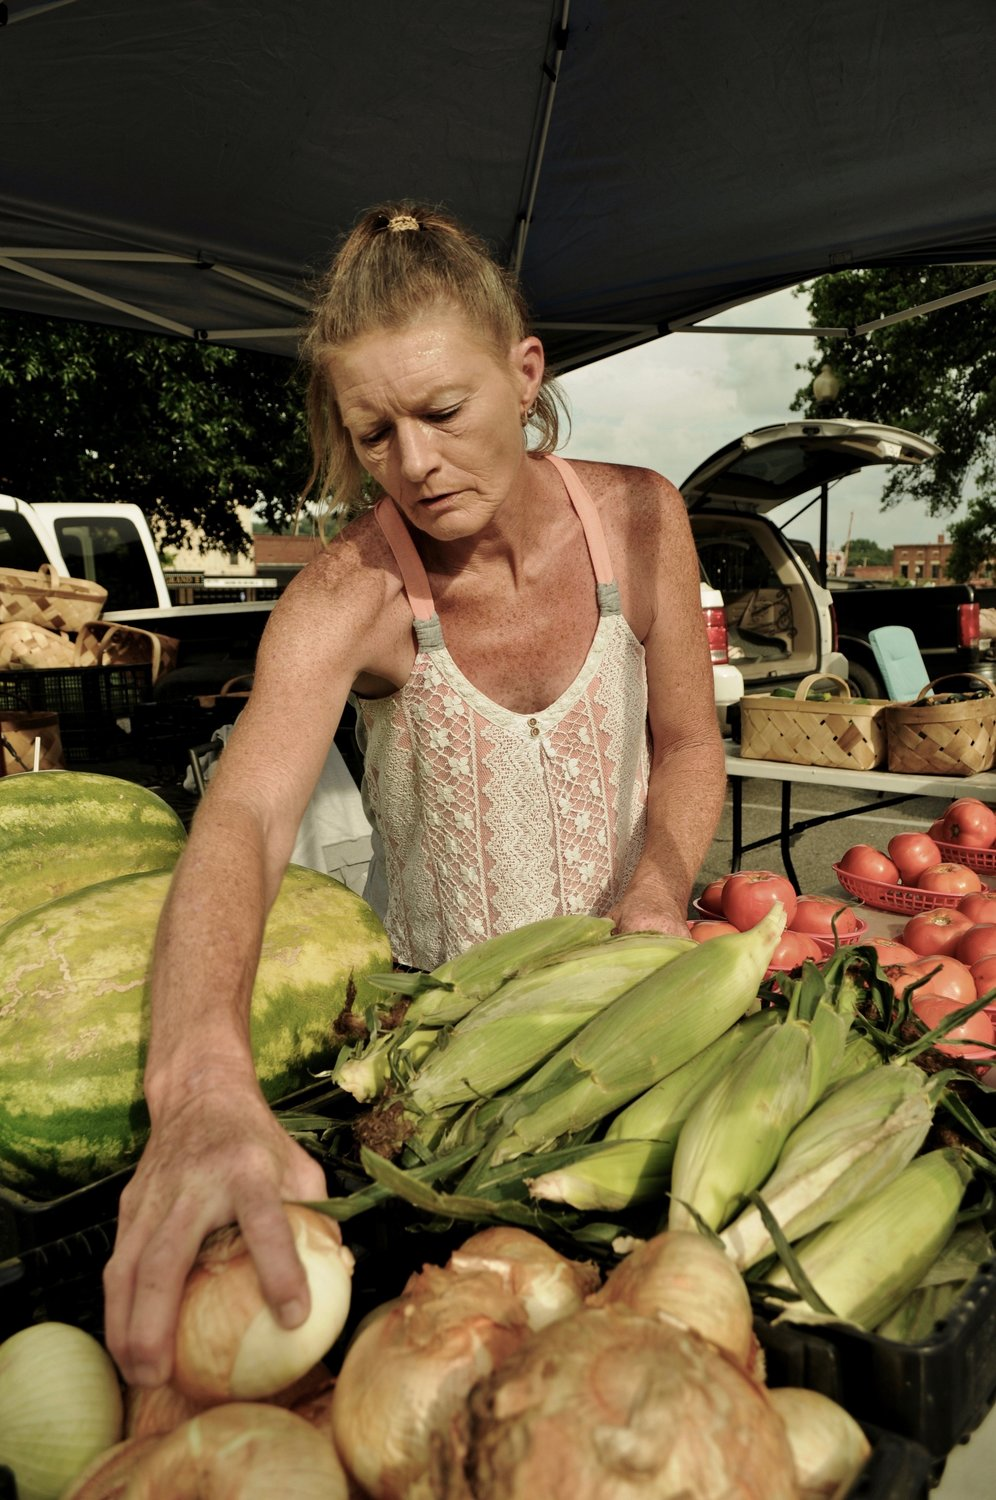 Teresa Lane of Emerson arranges onions in her display of vegetables at last year's Cartersville Farmer's Market.